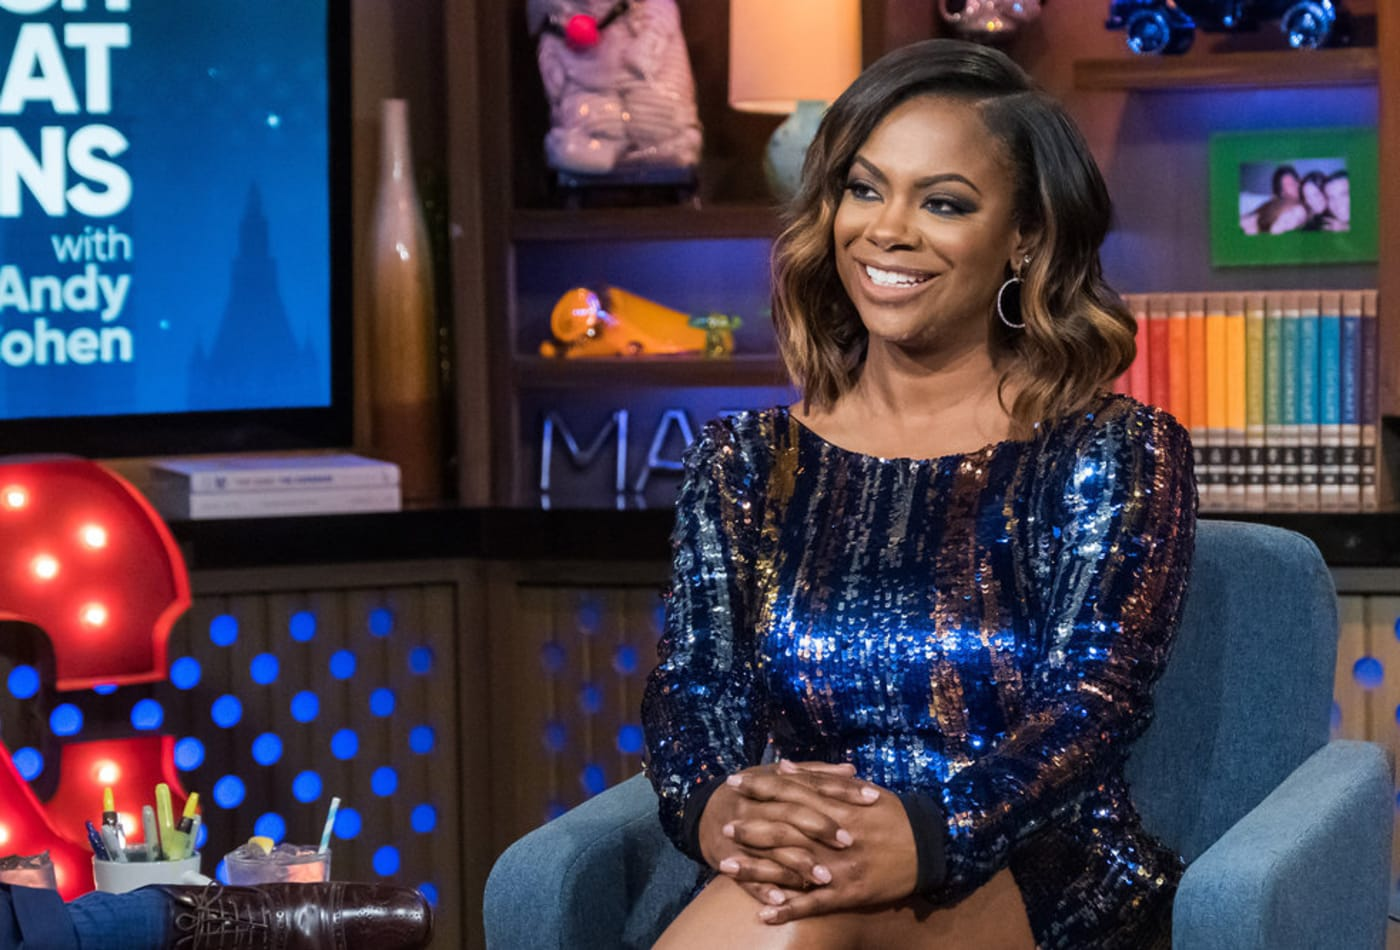 Kandi Burruss Shares A Word With Her Followers - See Her Latest Video